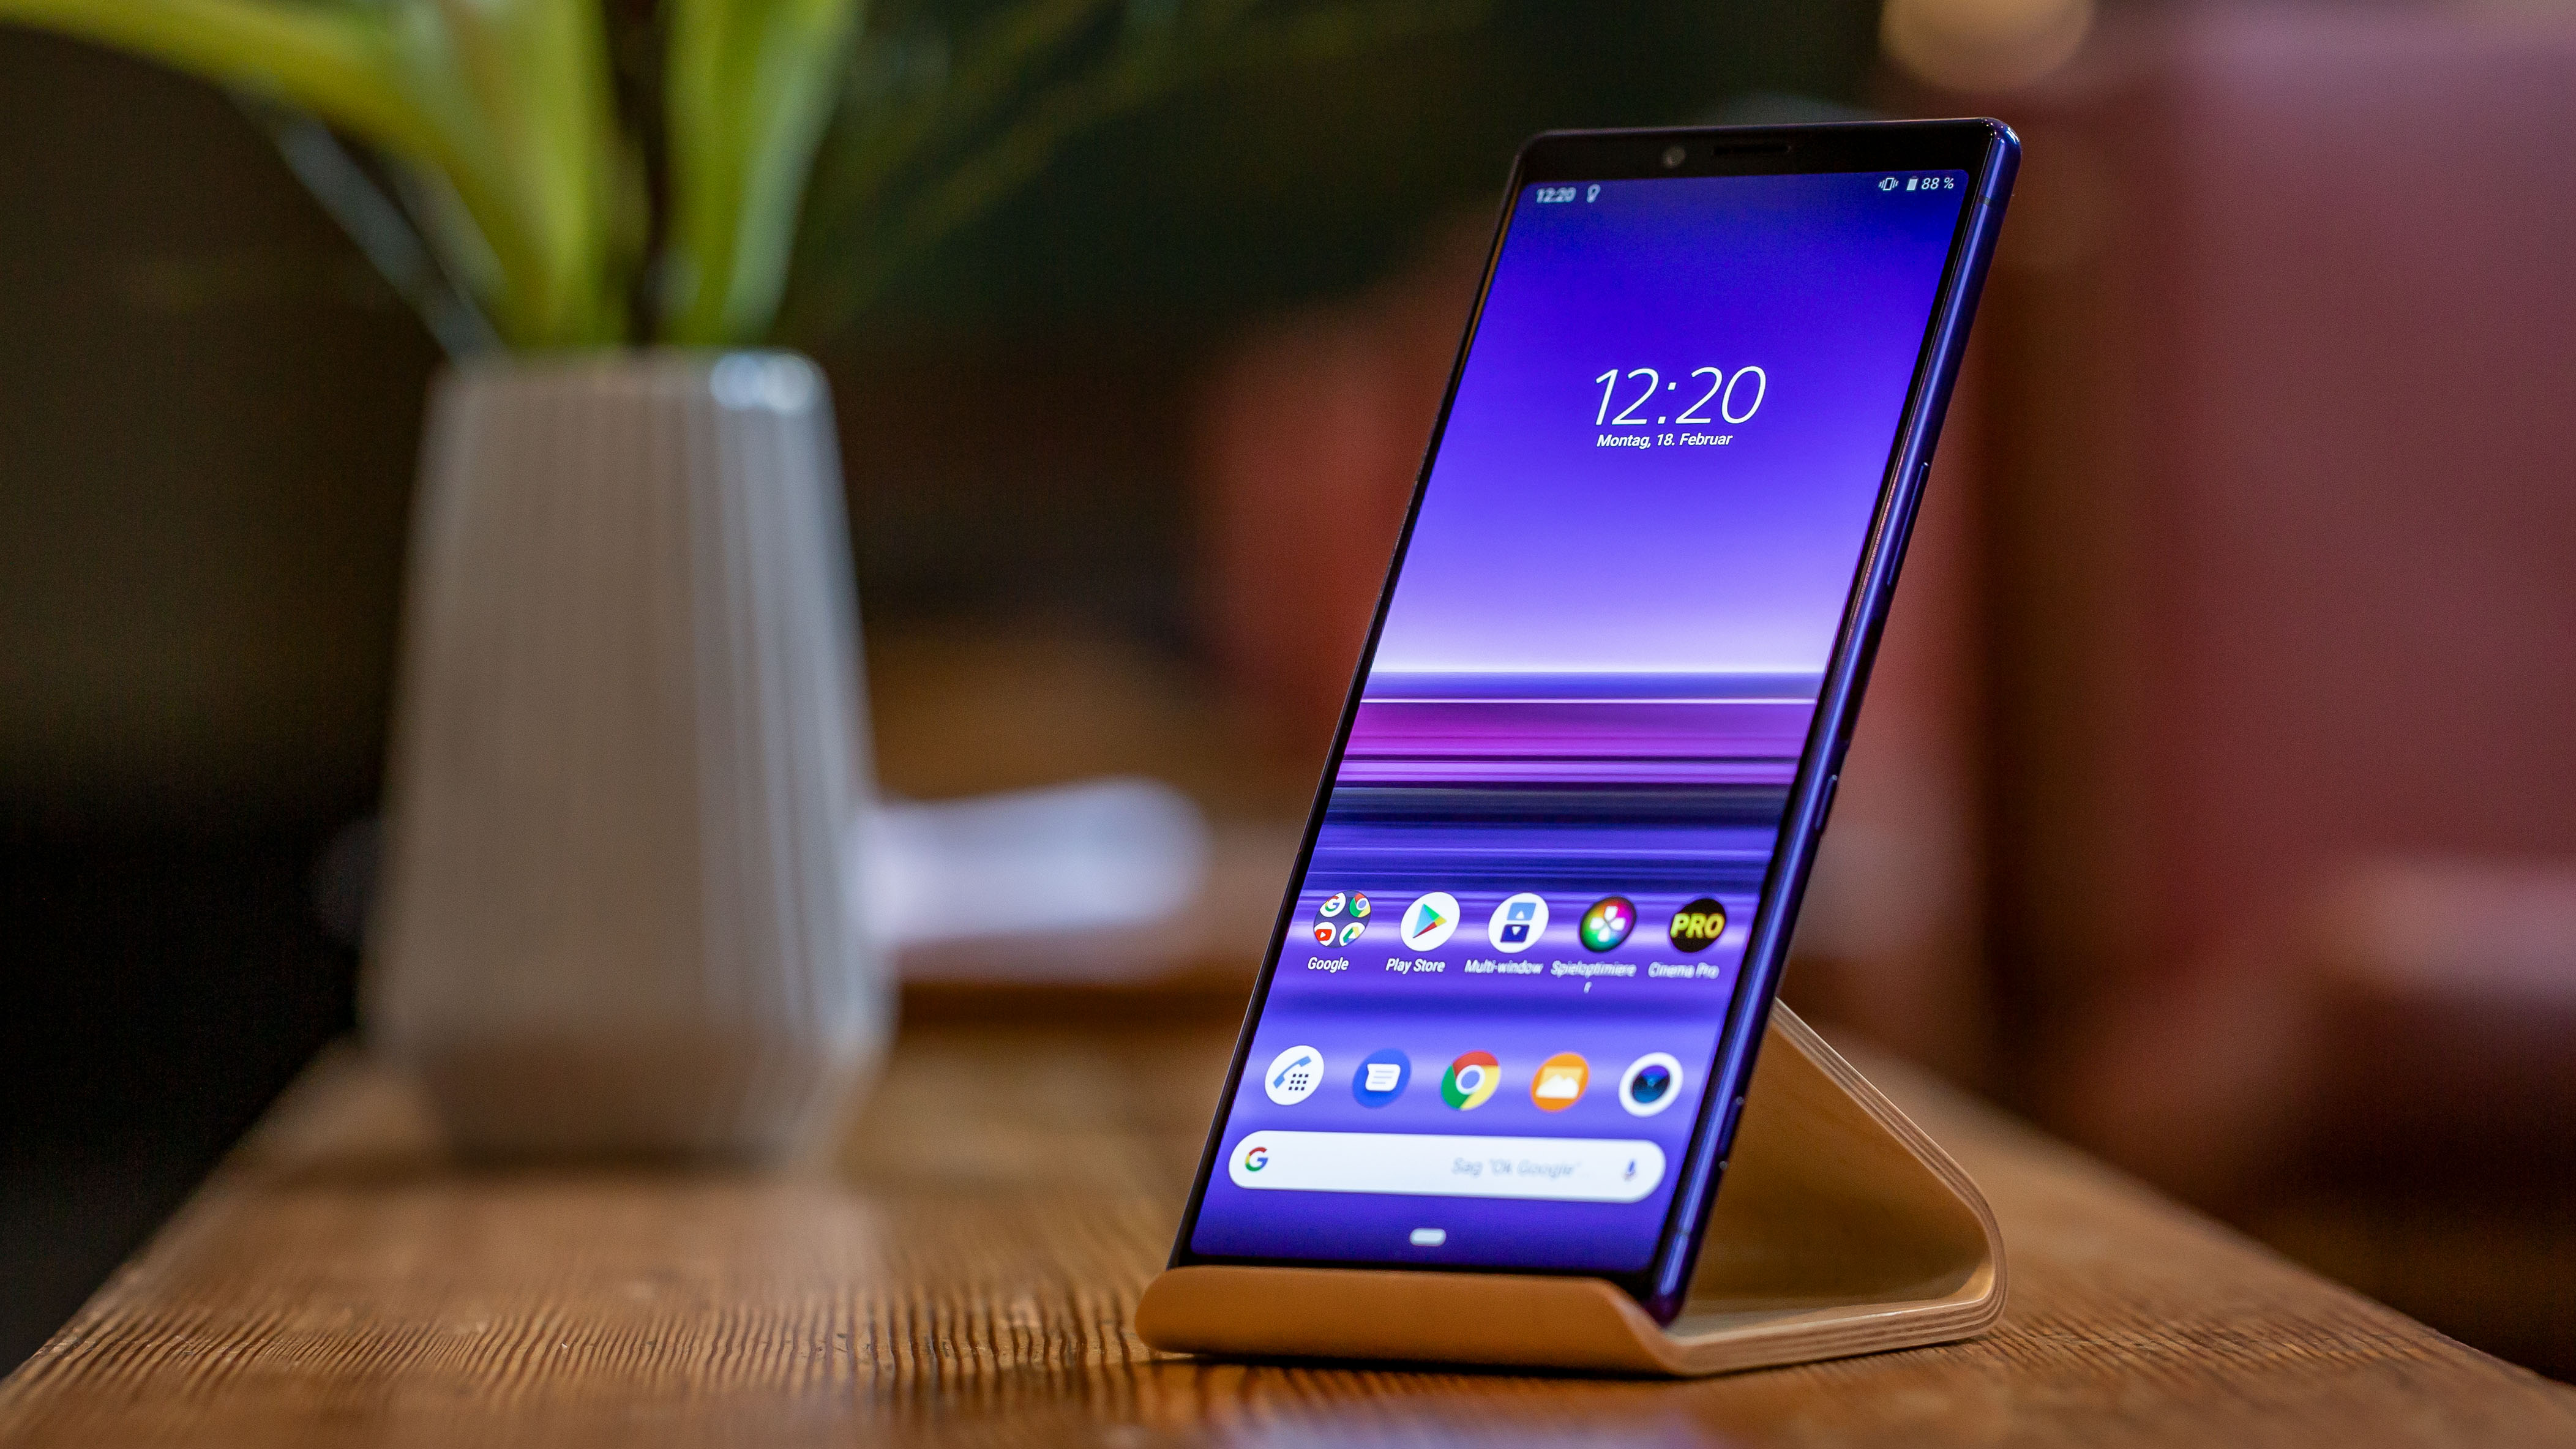 Sony Xperia 1 Smartphone Has Launched